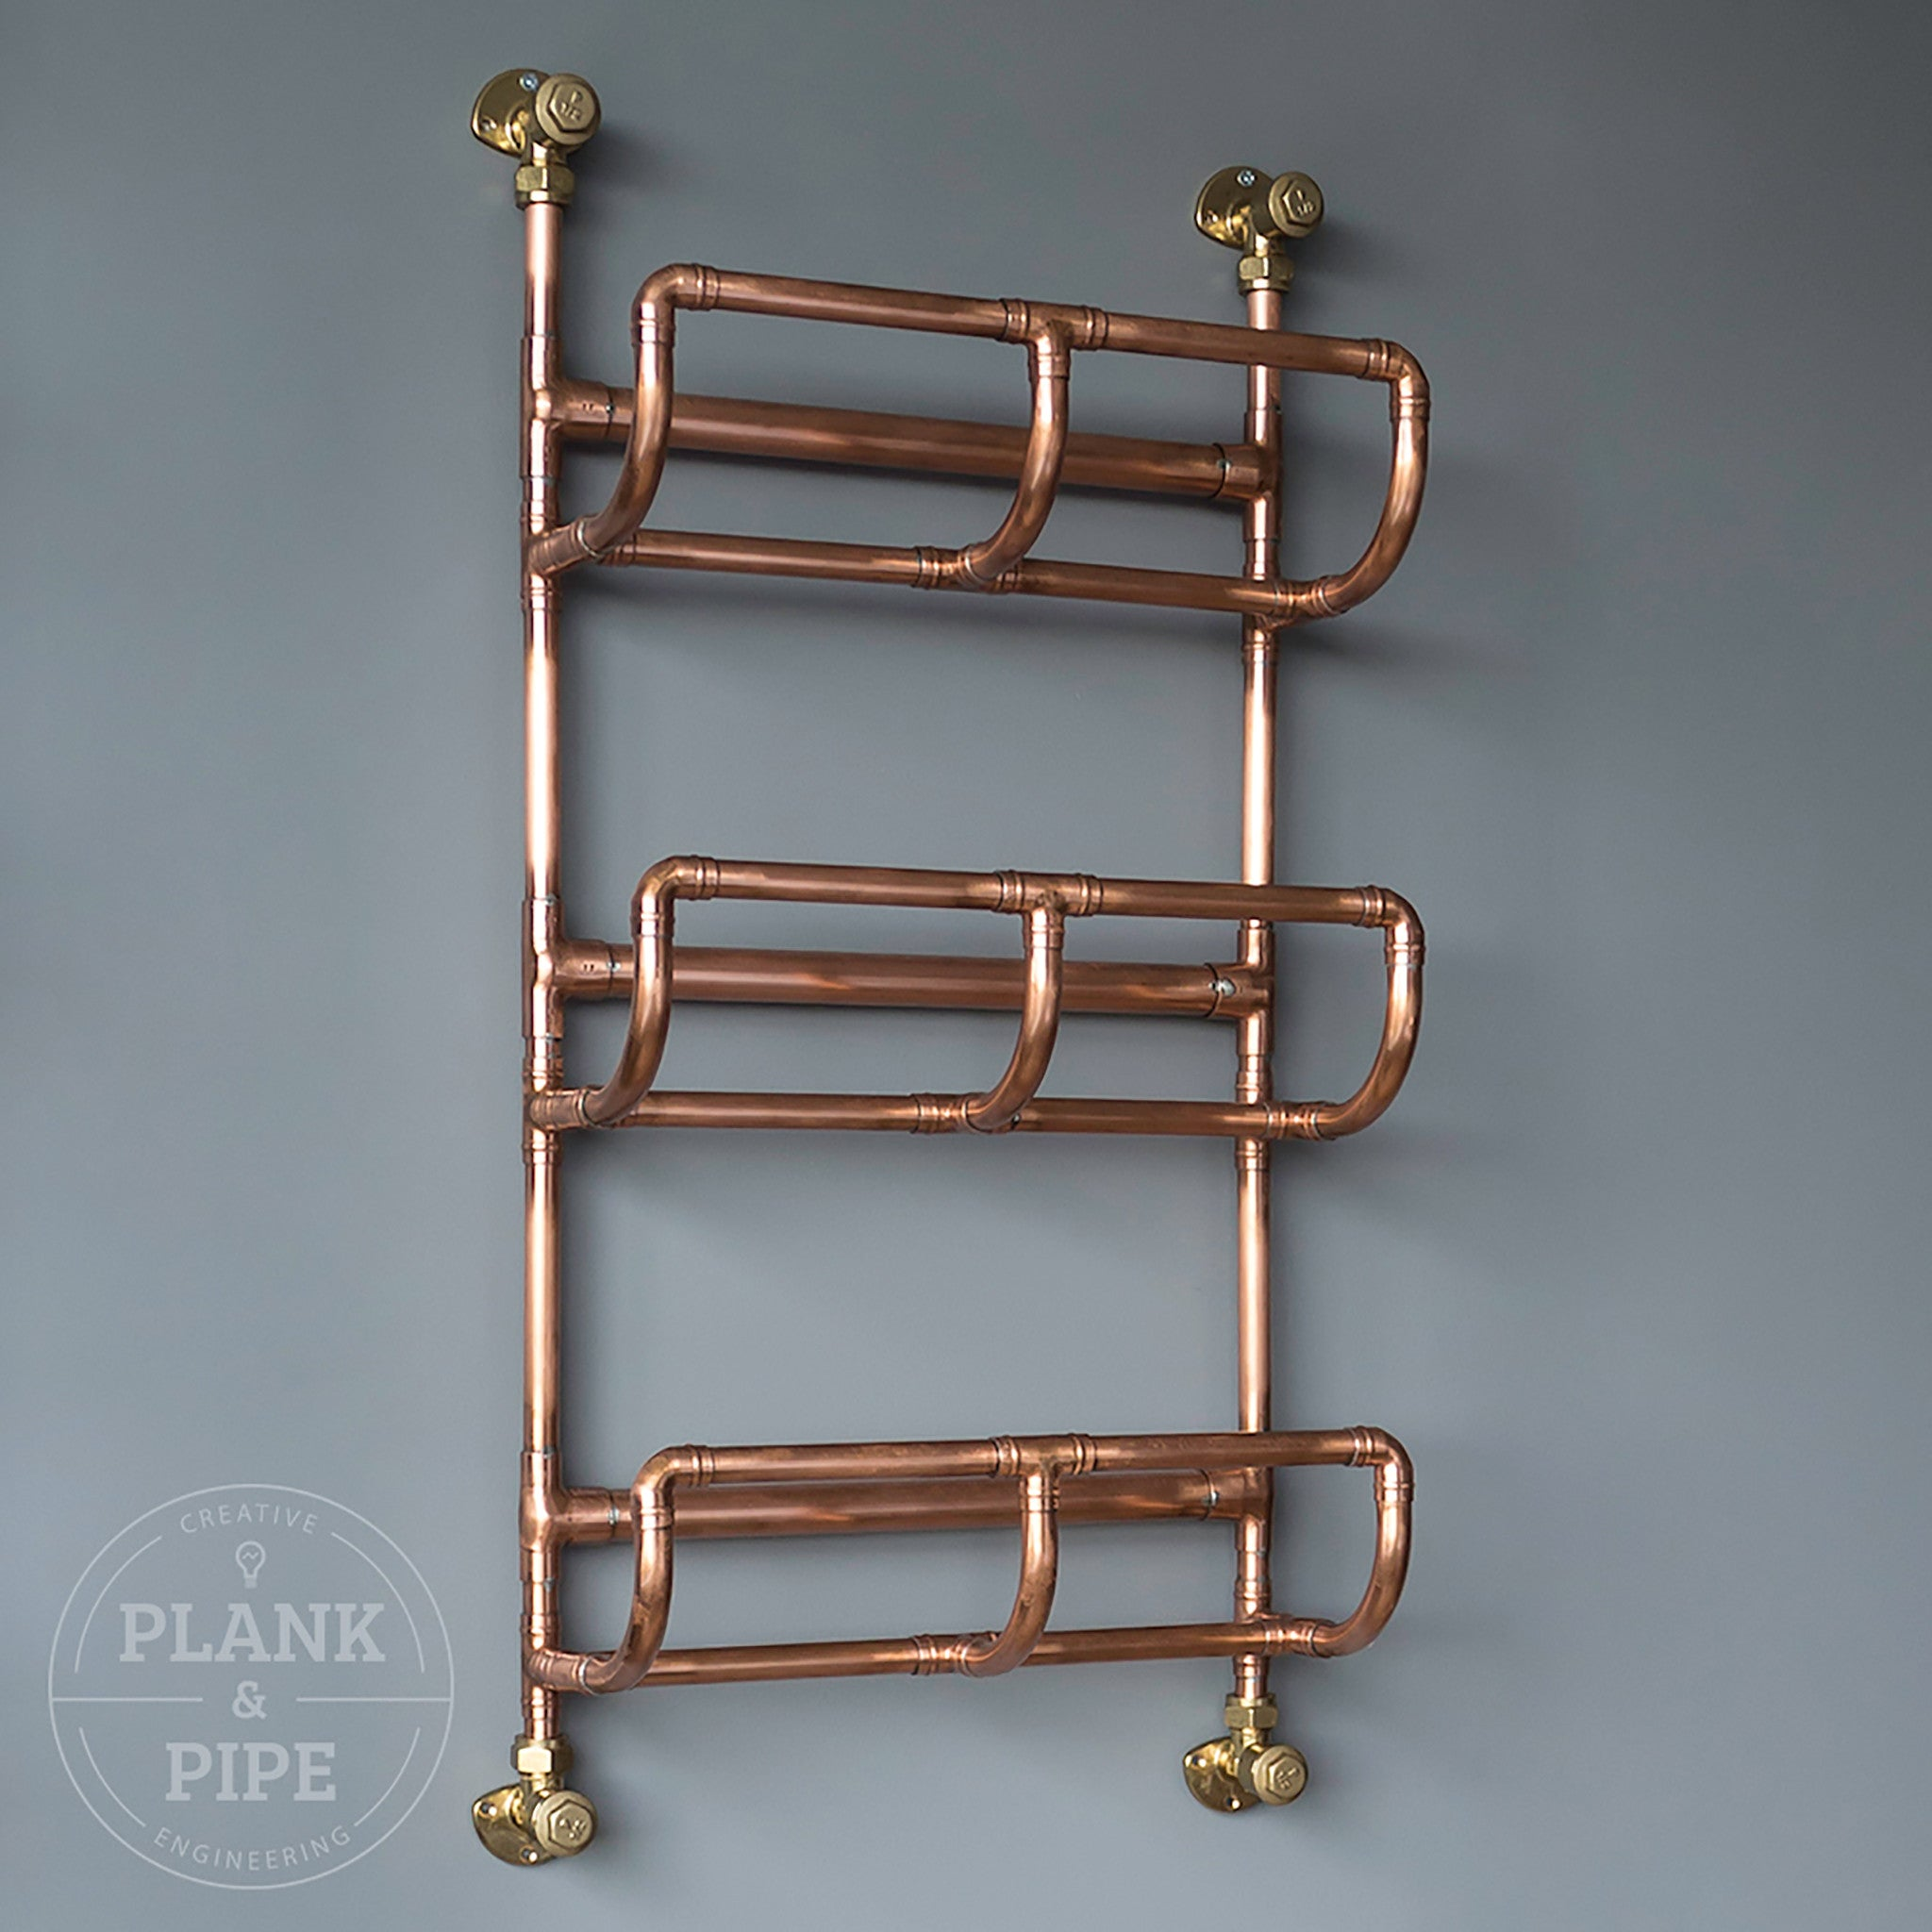 Copper Towel Rack 3 Tier without Towels